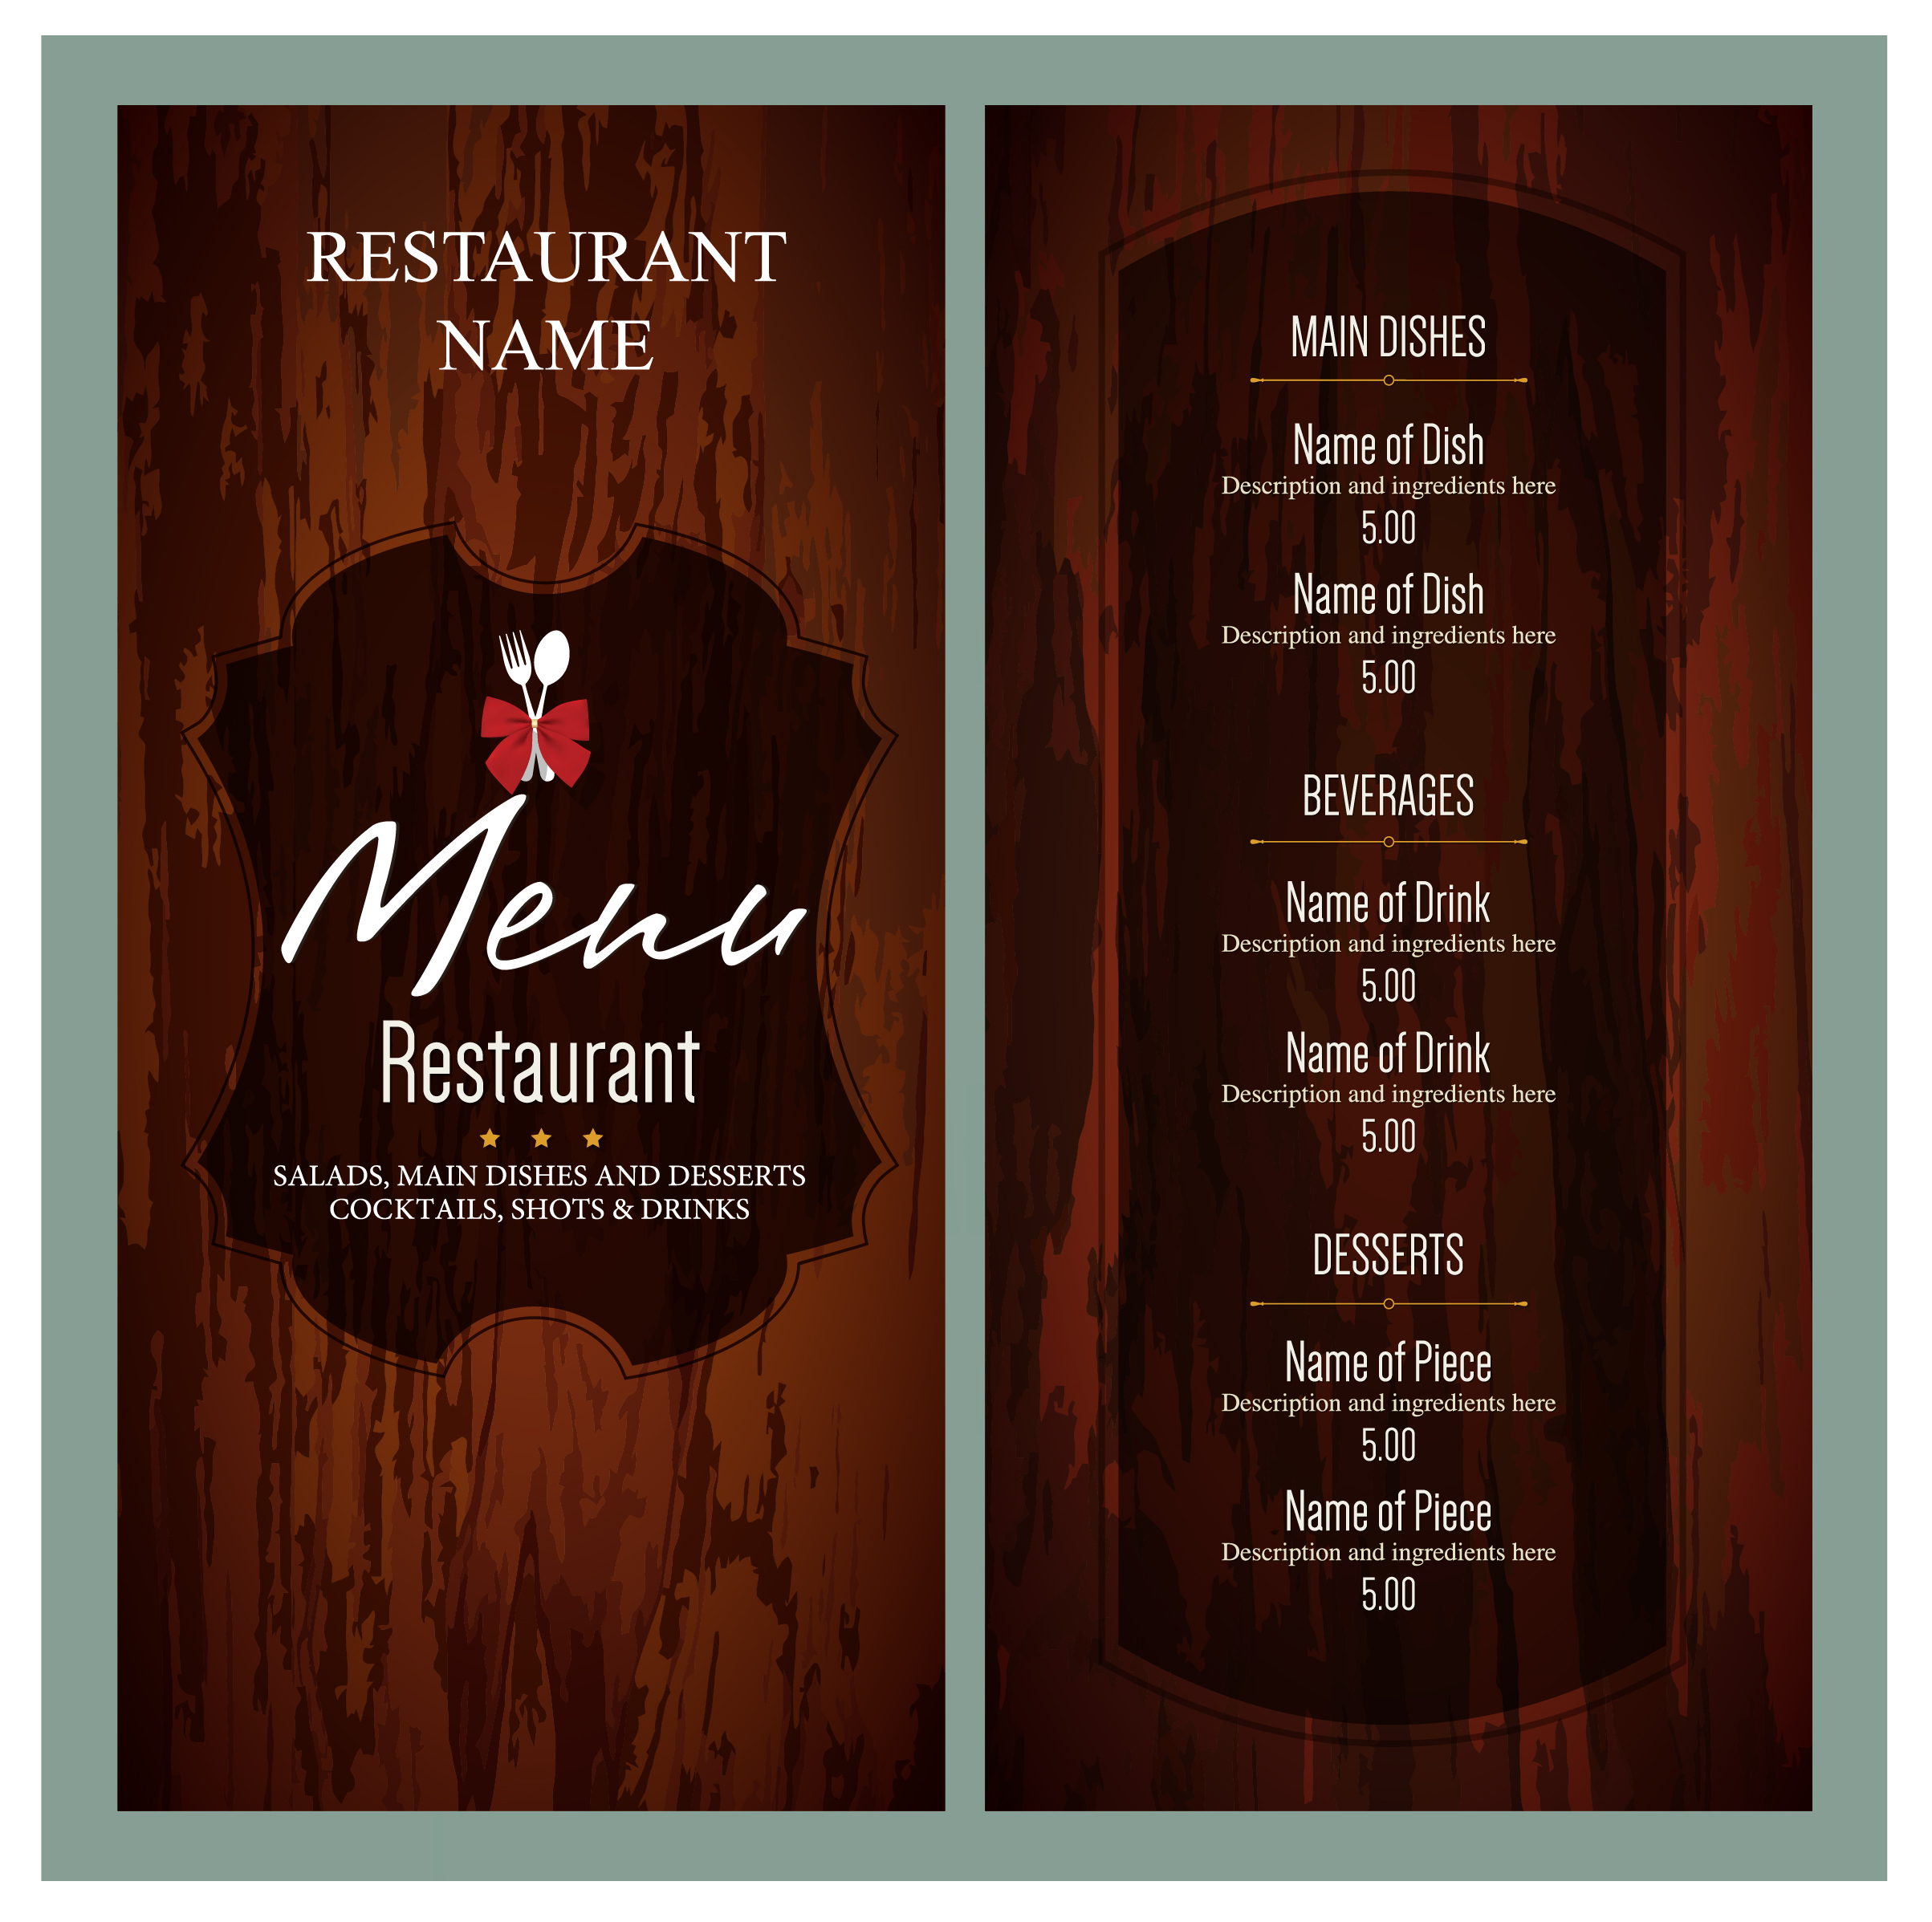 resturant menu templates - 10 free sample italian menu templates printable samples